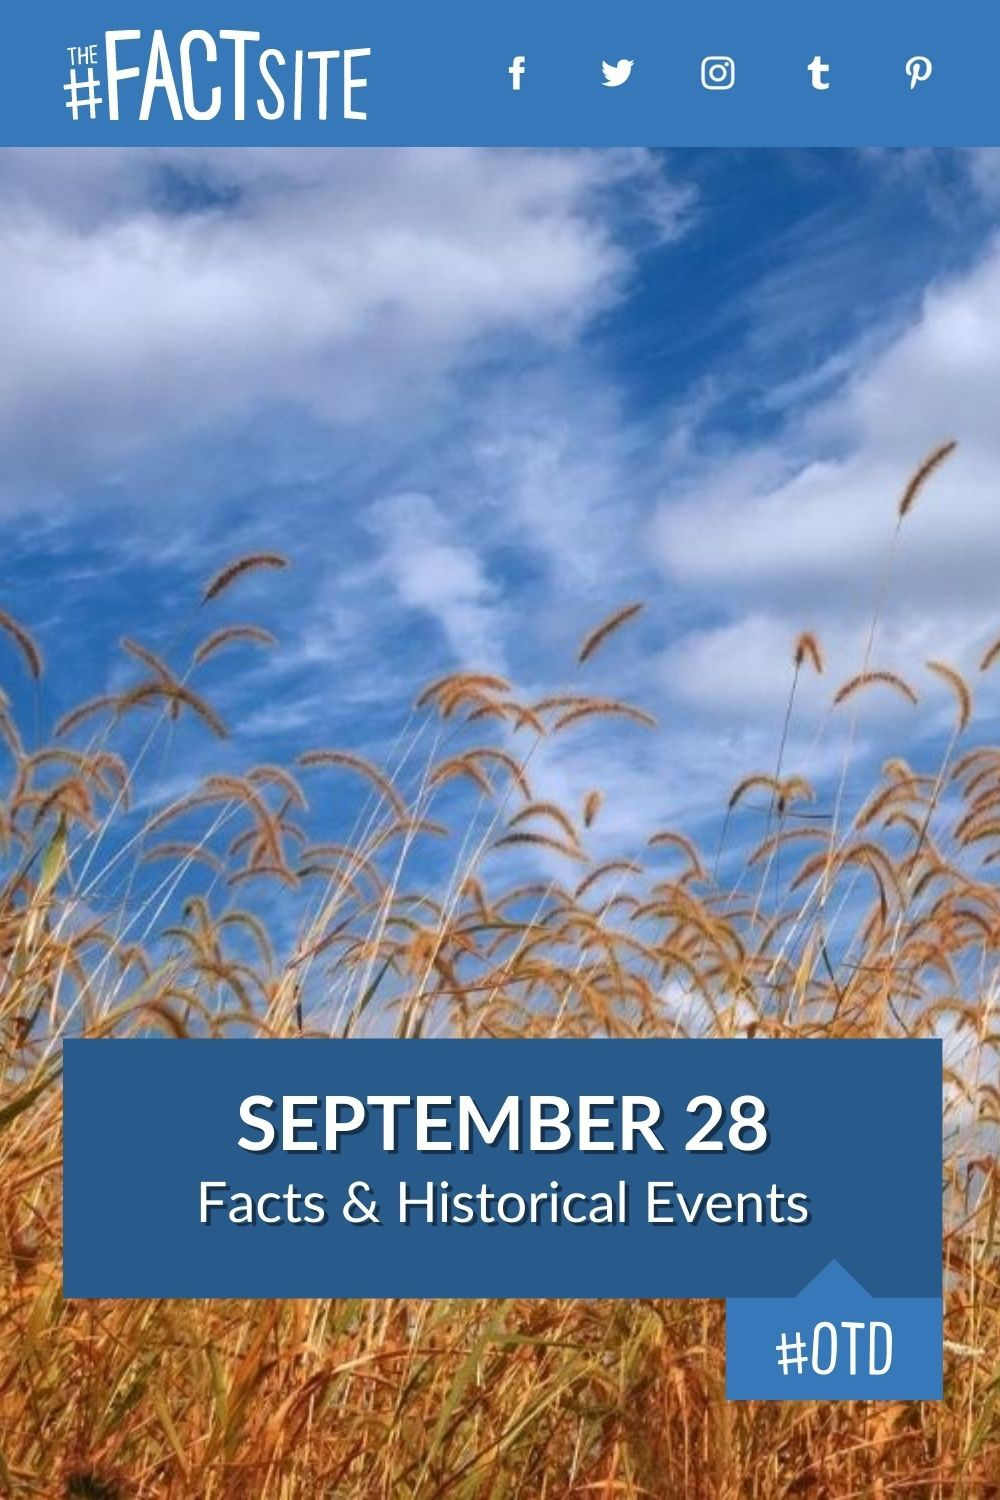 Facts & Historic Events That Happened on September 28